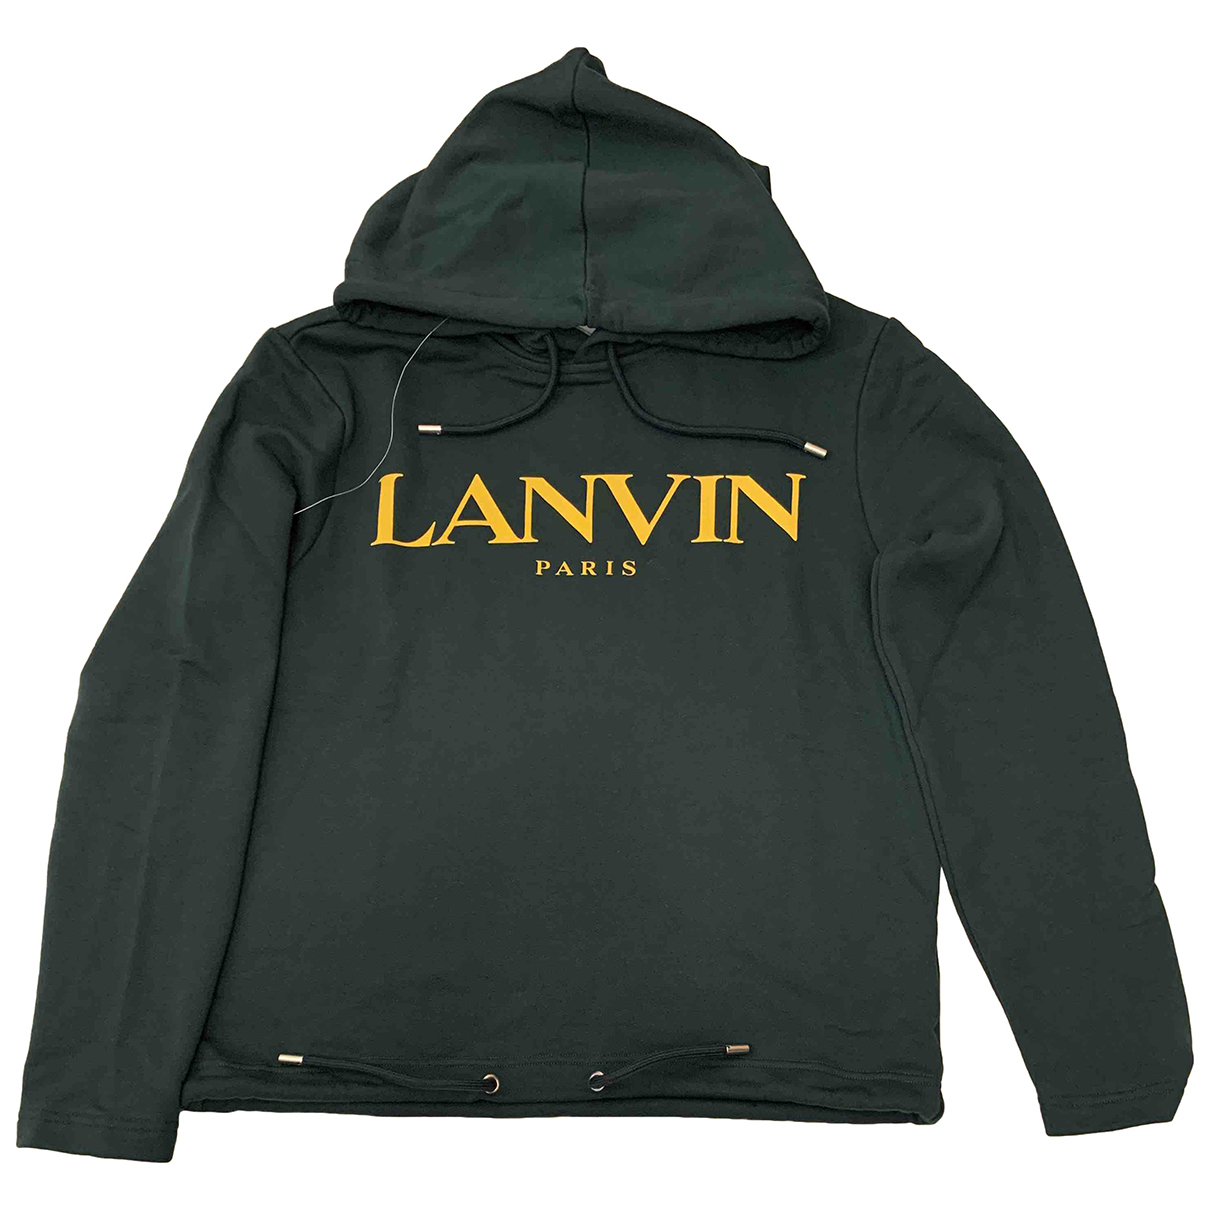 Lanvin N Green Cotton Knitwear & Sweatshirts for Men M International